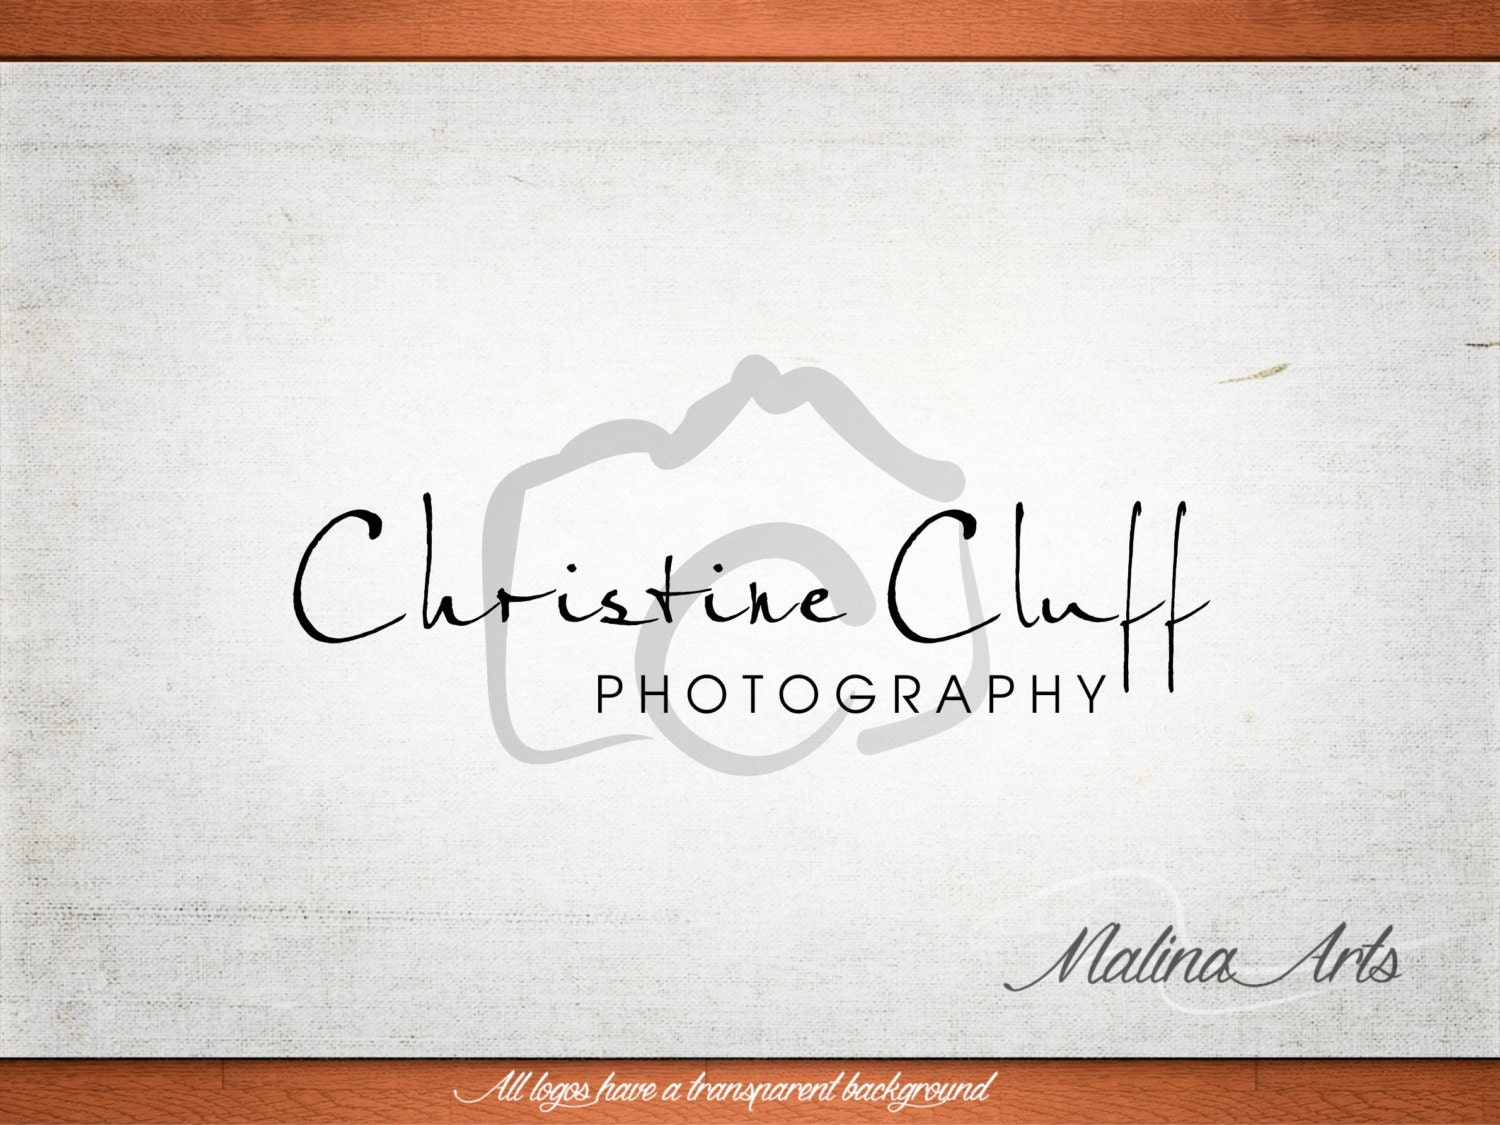 Cached Watermark designs for photos